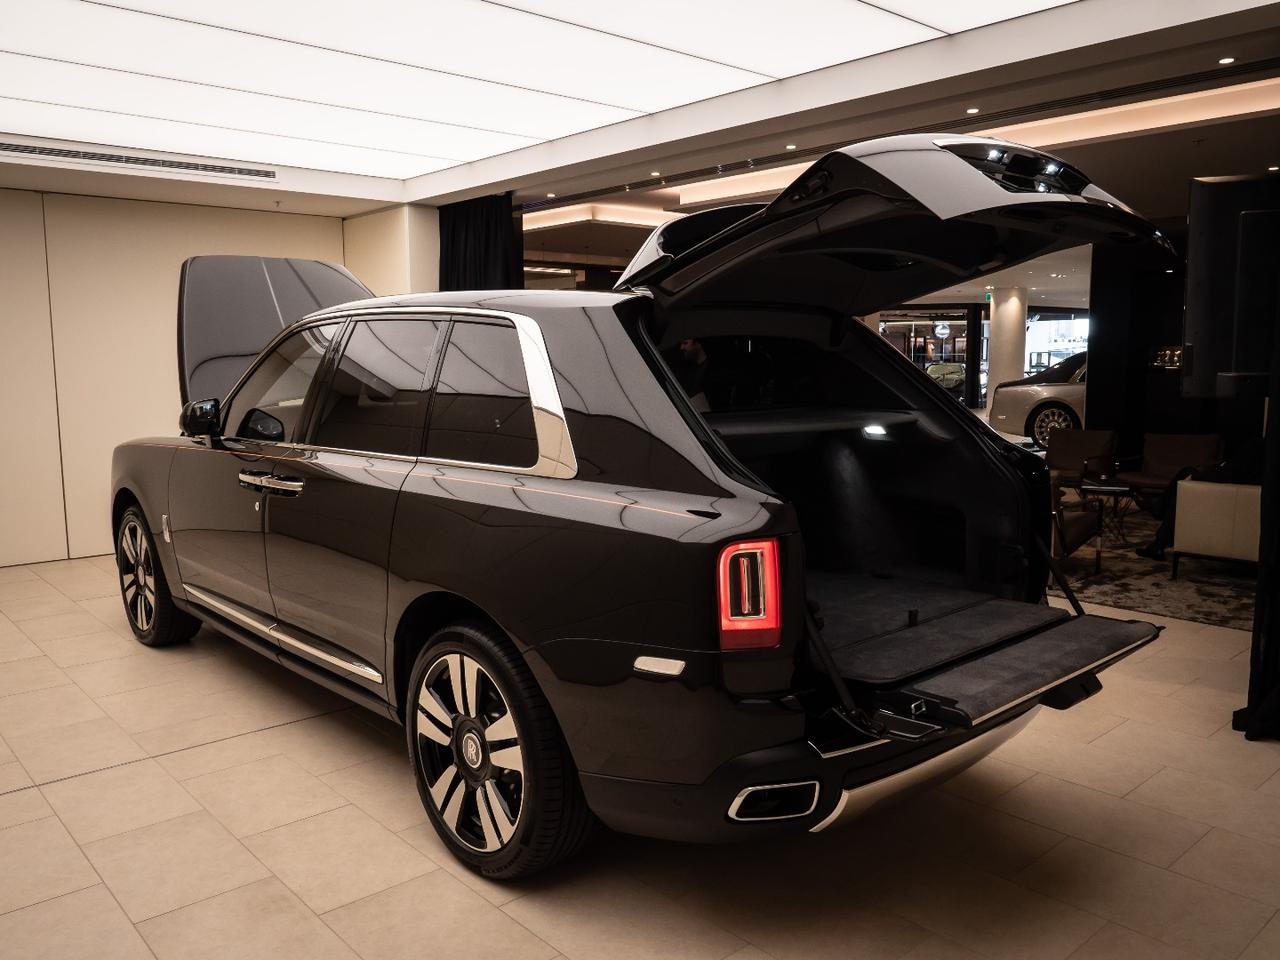 Rolls-Royce Cullinan: clamshell trunk design opens very wide and supports up to 300kg on the tailgate